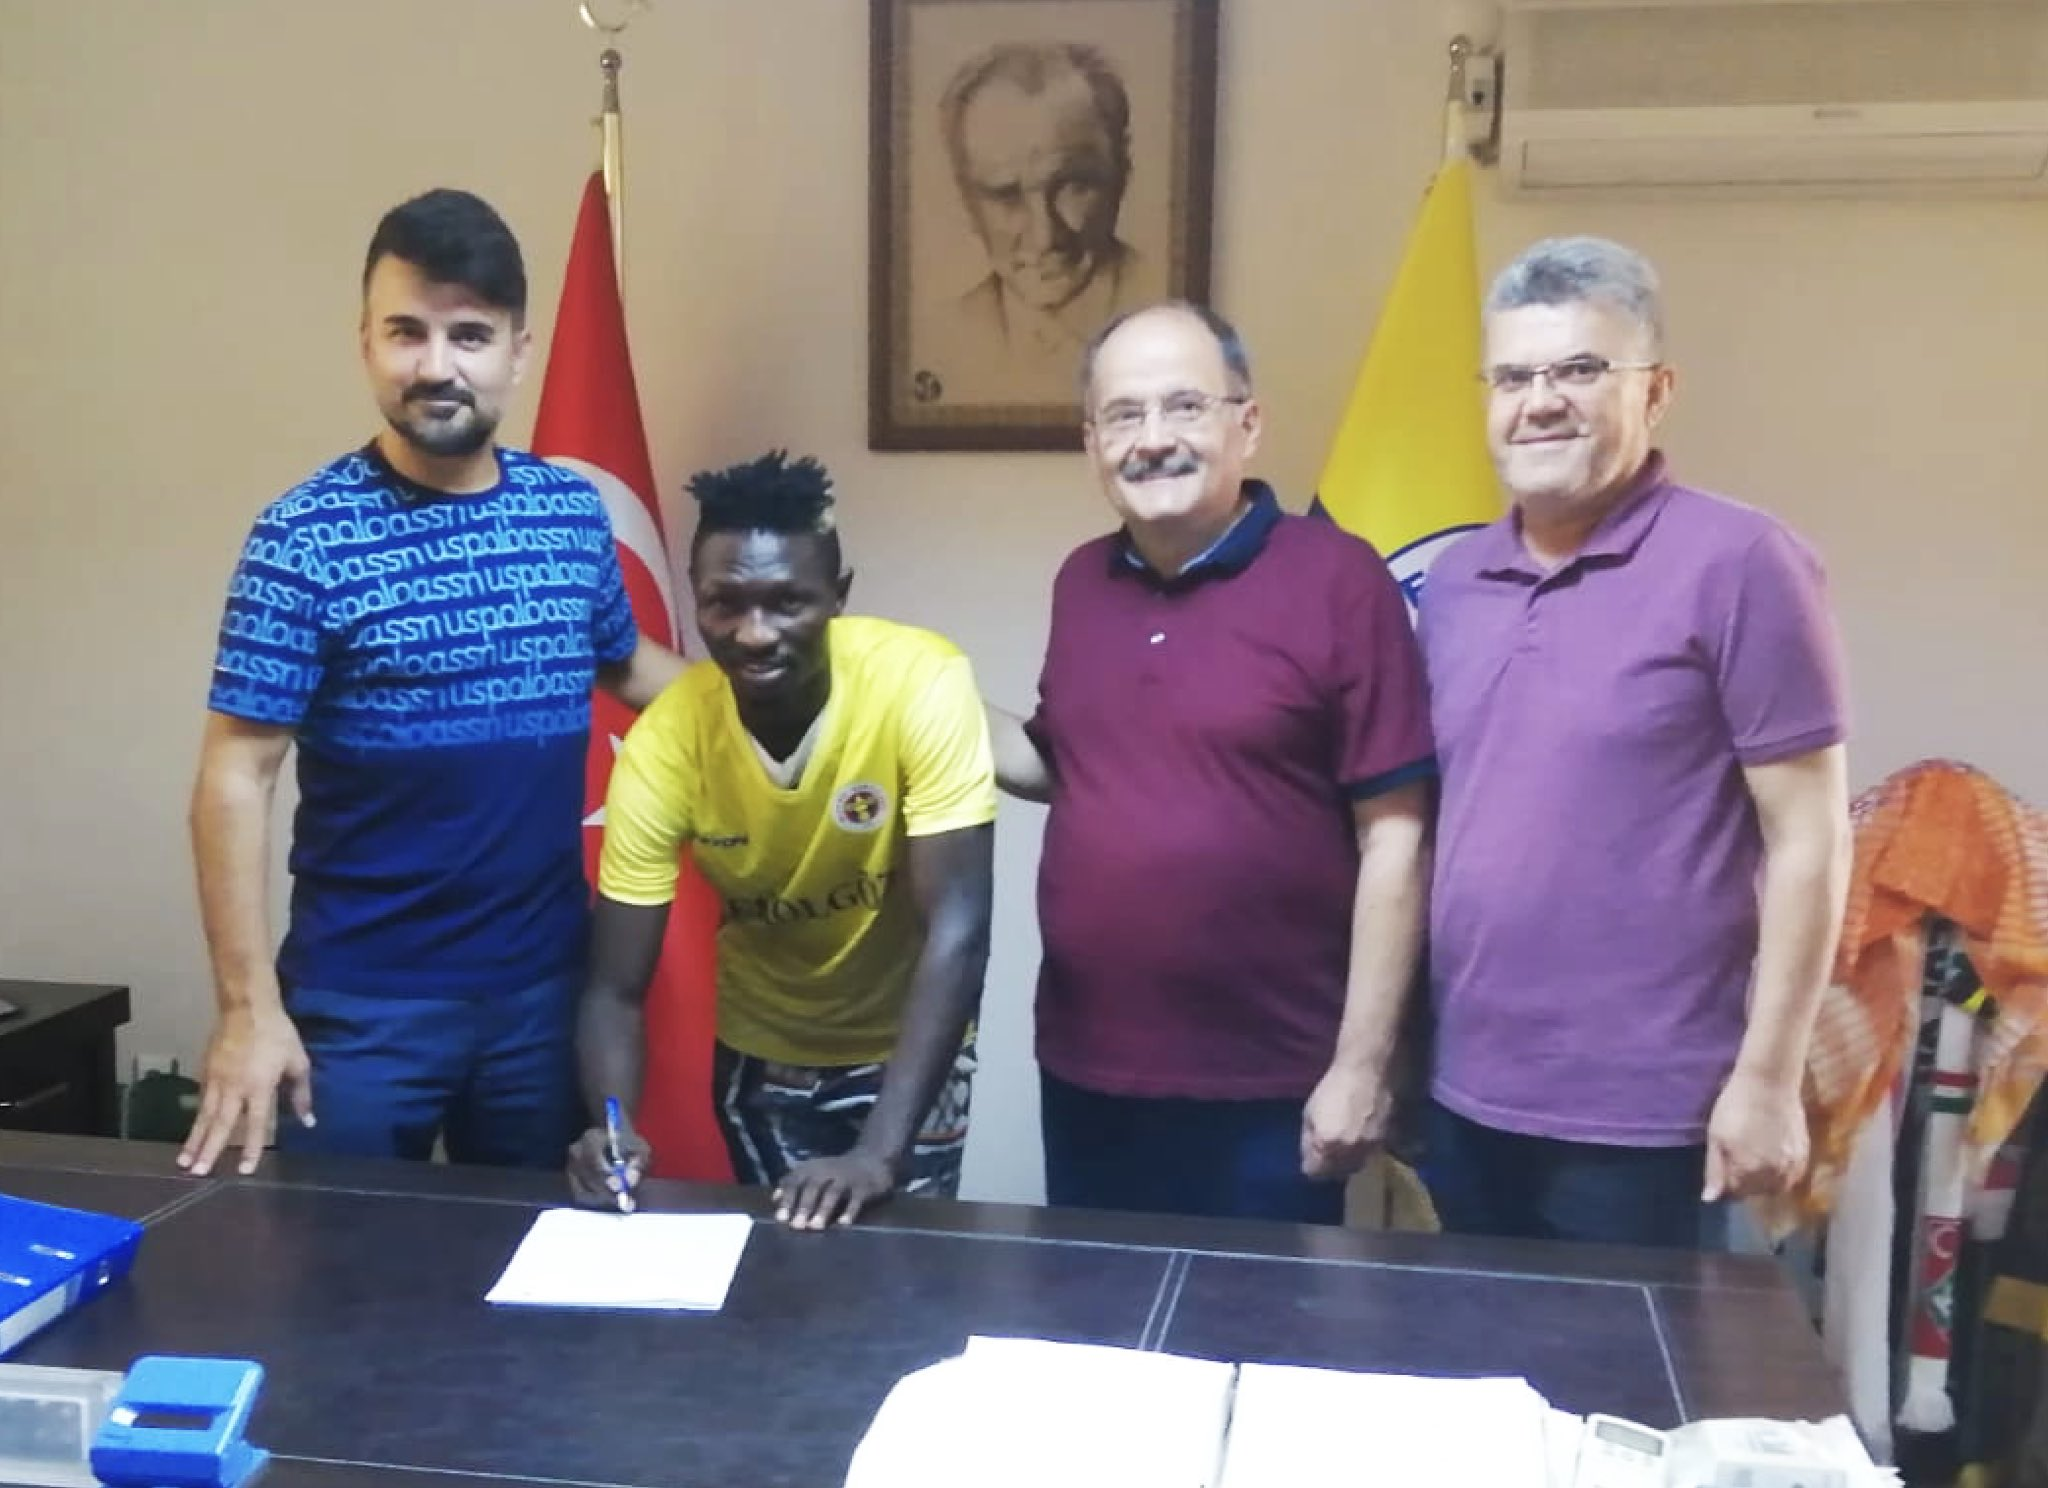 Olatunbosun: I'm Excited To Join Menemenspor, Our Target Is Promotion